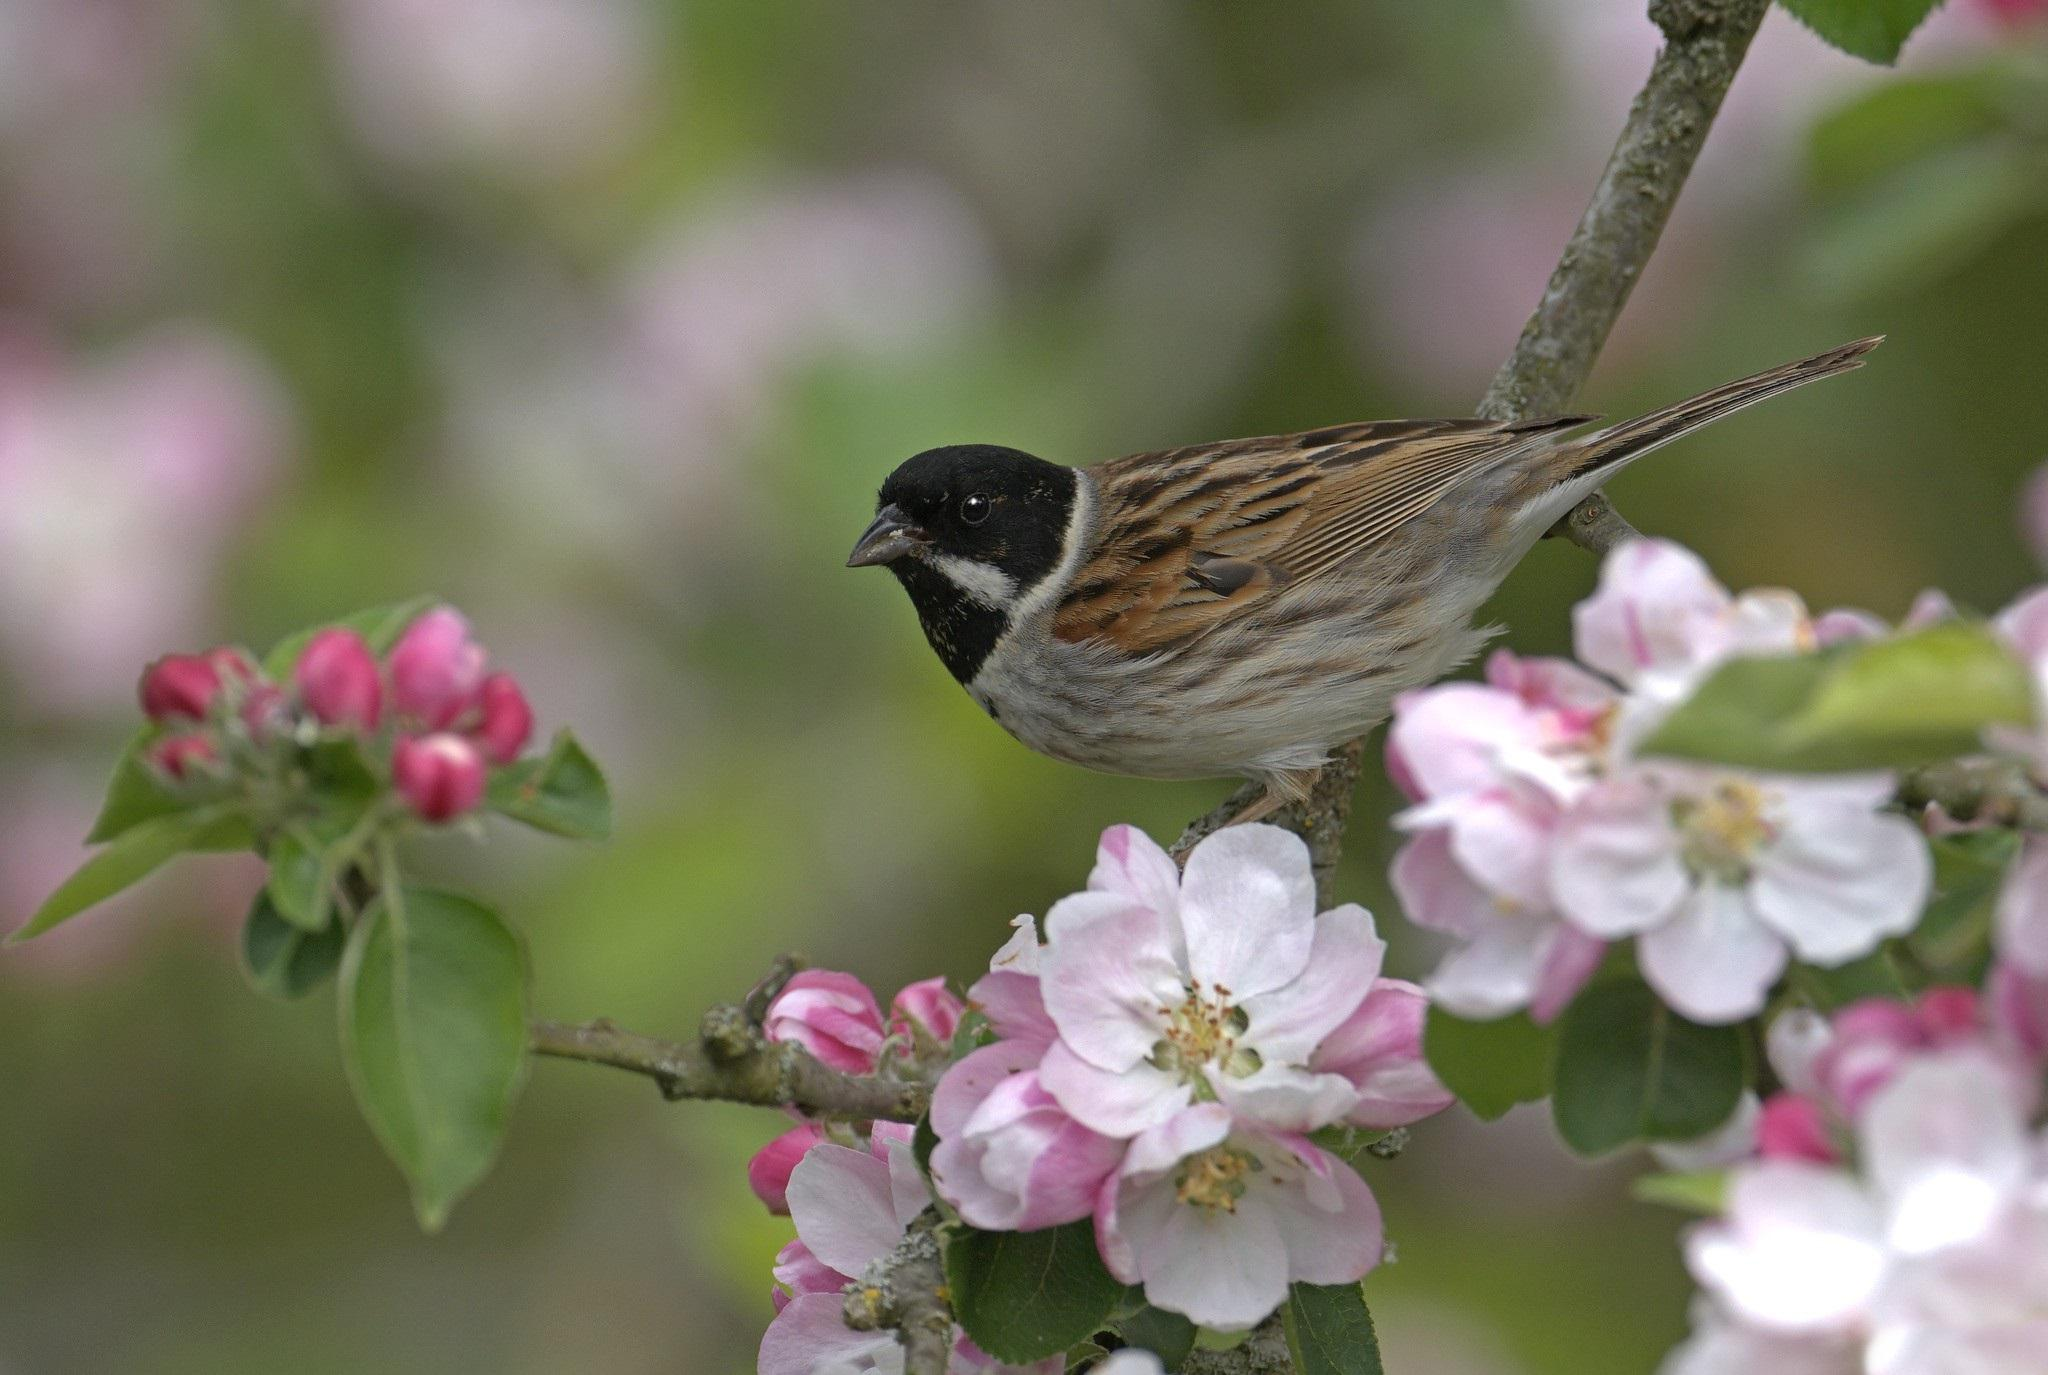 bird and flowers   134213   High Quality and Resolution Wallpapers 2048x1375